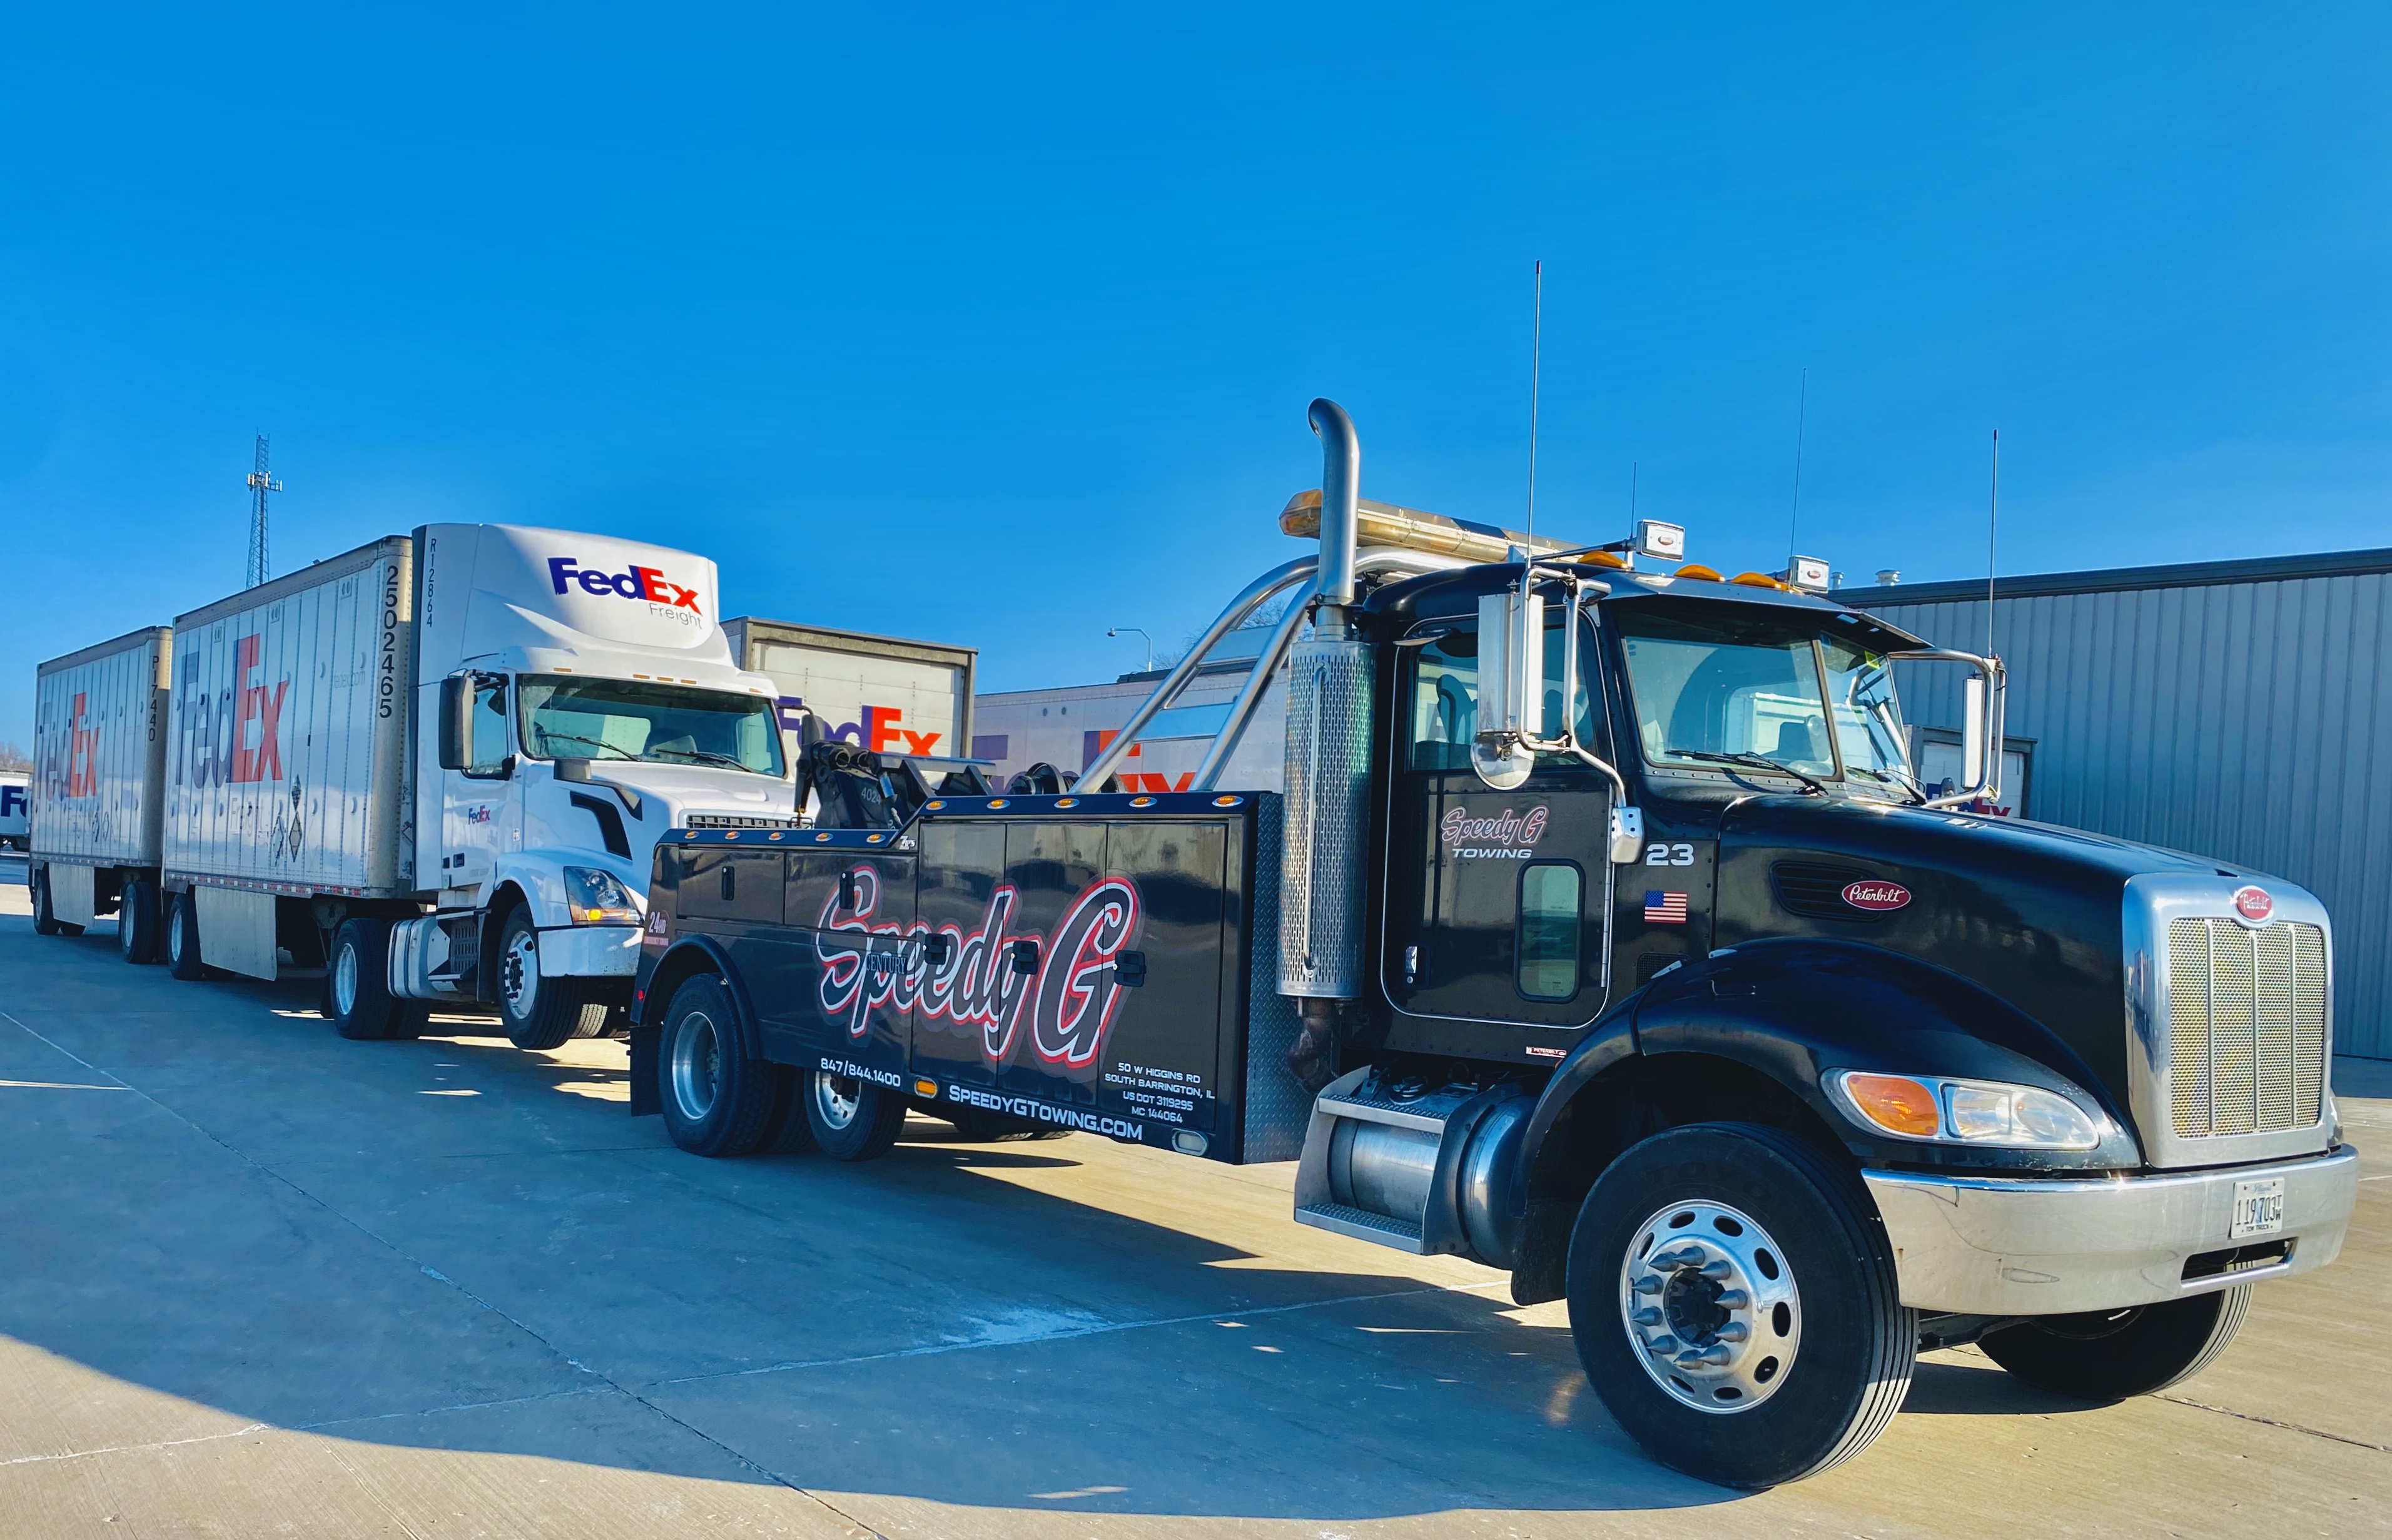 Franklin Park Il Towing Near You From 65 24 7 Towing Service Tow Truck Company